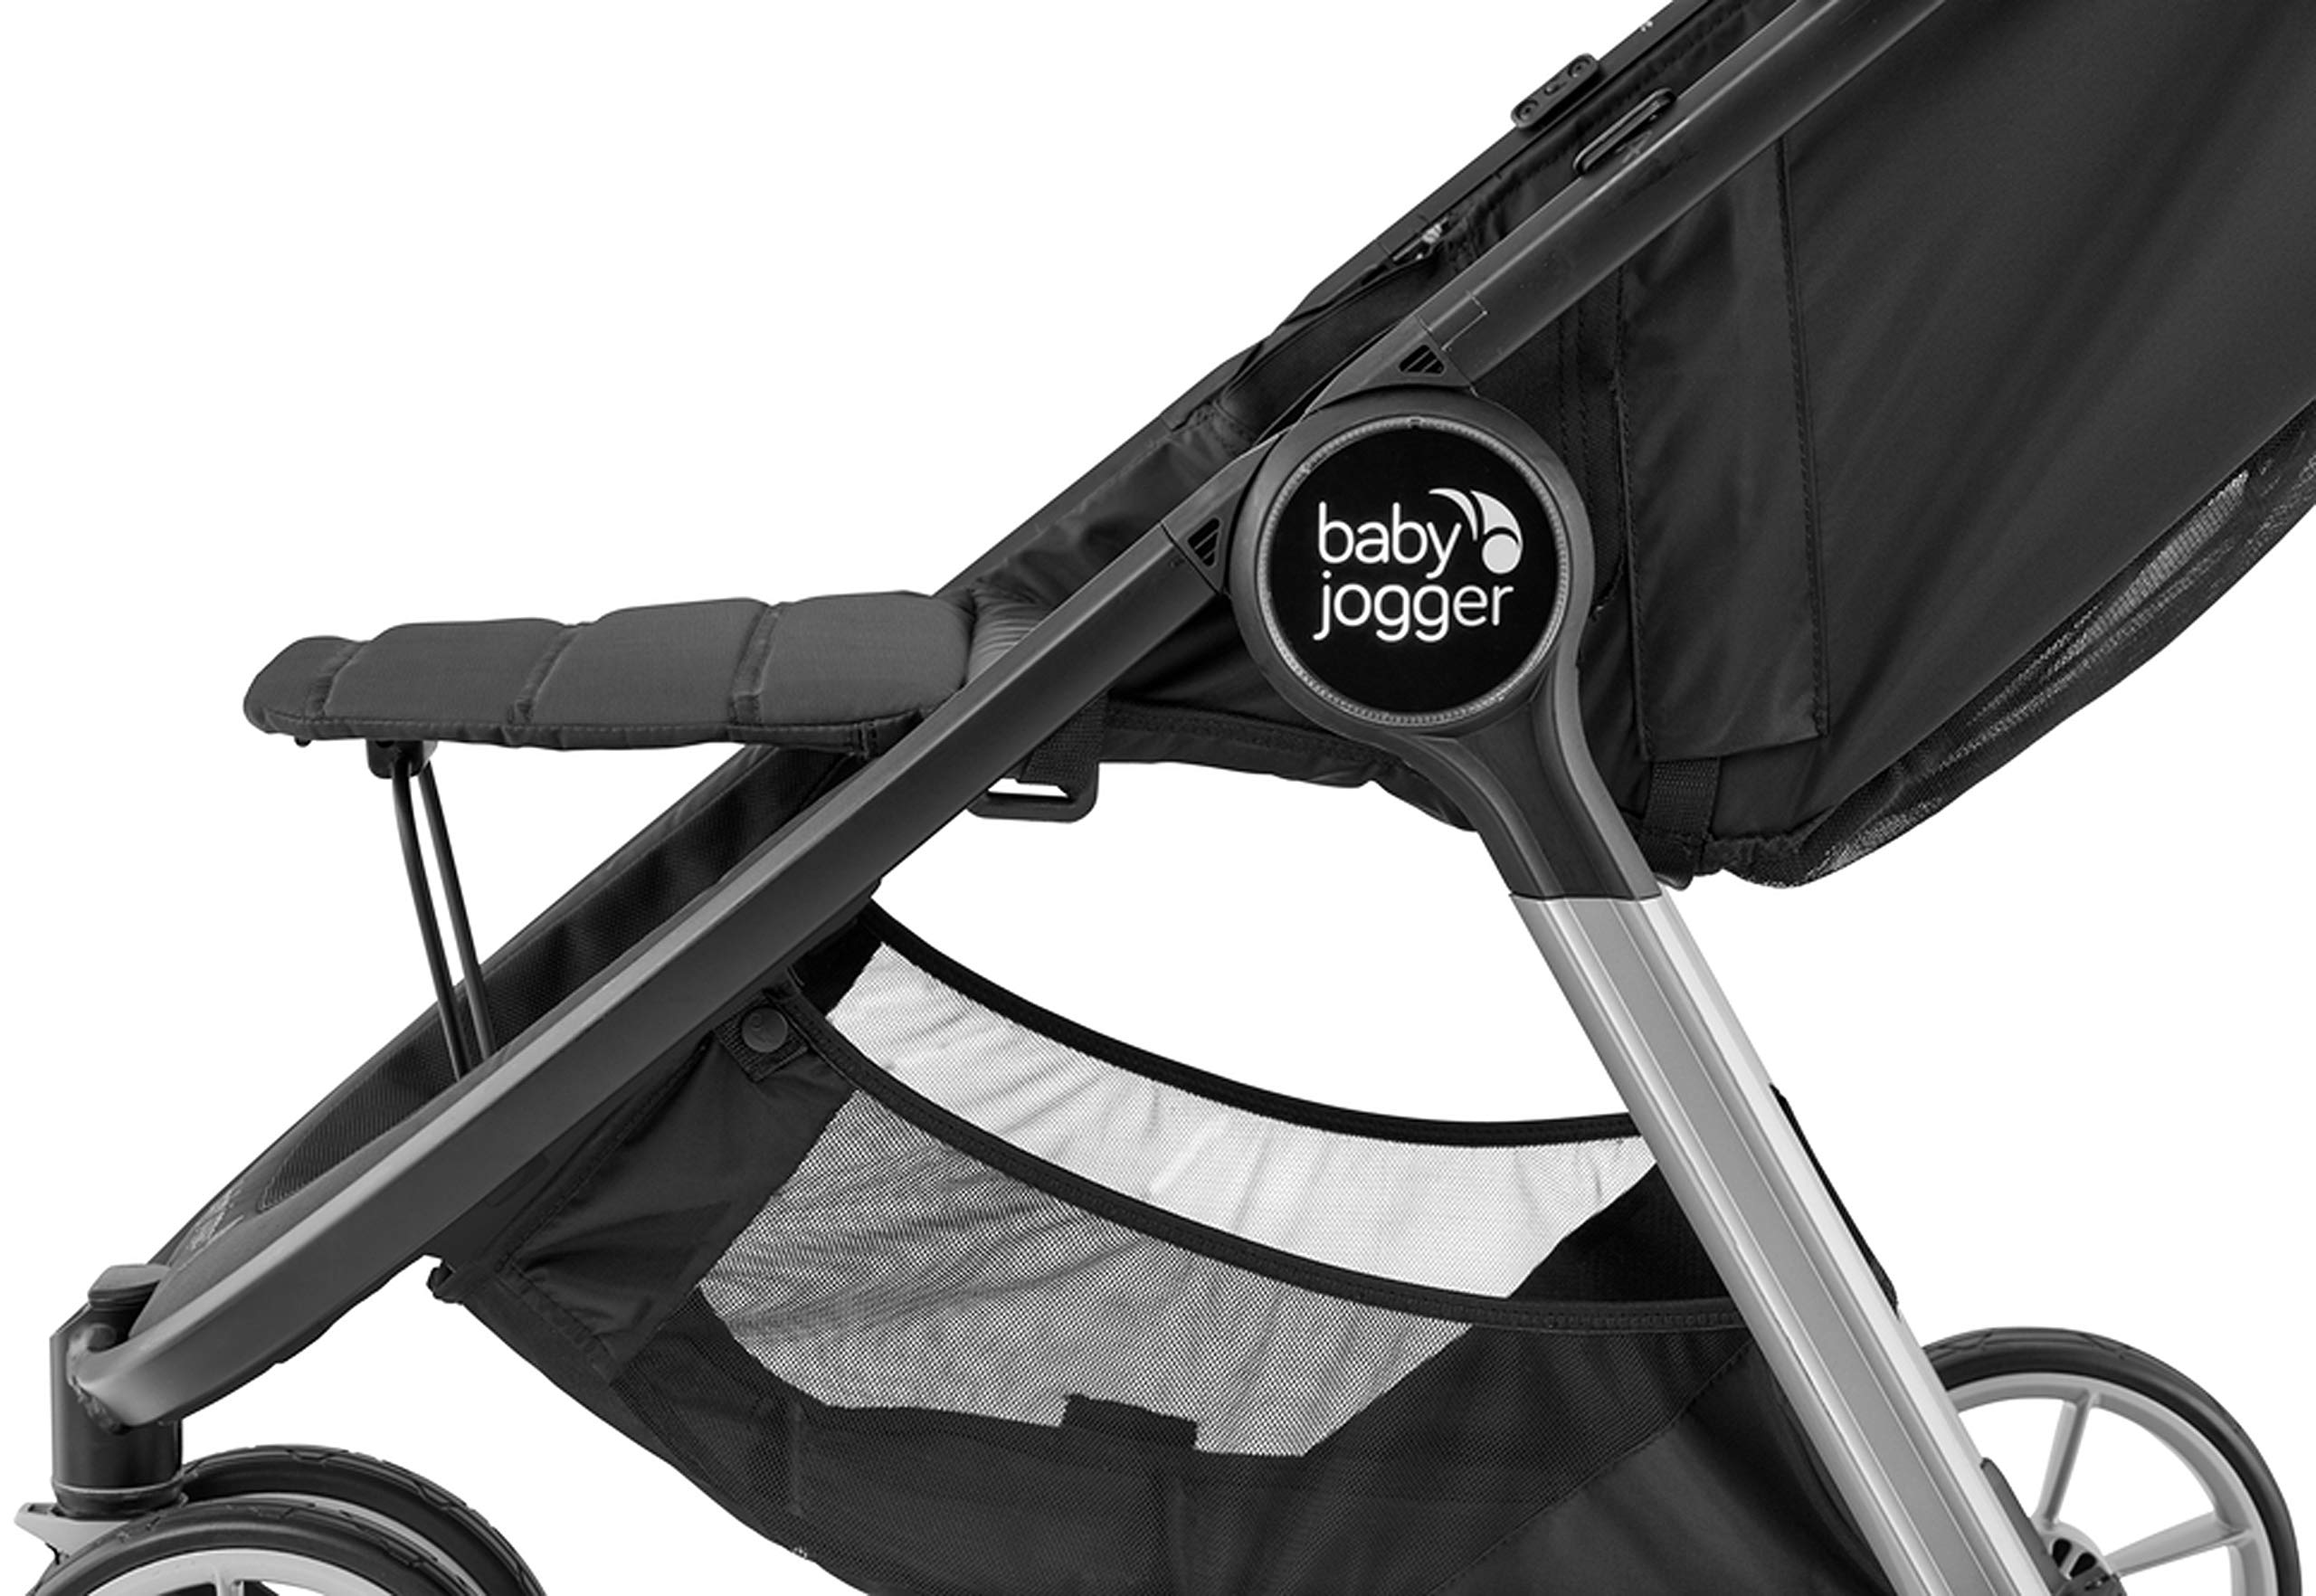 baby jogger City Mini 2 Single Stroller Slate Baby Jogger The baby jogger city mini 2 has an all new lightweight and compact design with the signature one-hand compact fold, with an auto-lock it's remarkably nimble and ready for adventure Lift a strap with one hand and the city mini 2 folds itself: simply and compactly. The auto-lock will lock the fold for transportation or storage The seat, with an adjustable calf support and near-flat recline, holds a child weighing up to 22kg and includes a 5-point stroller harness to keep them comfortable and safely secured 5